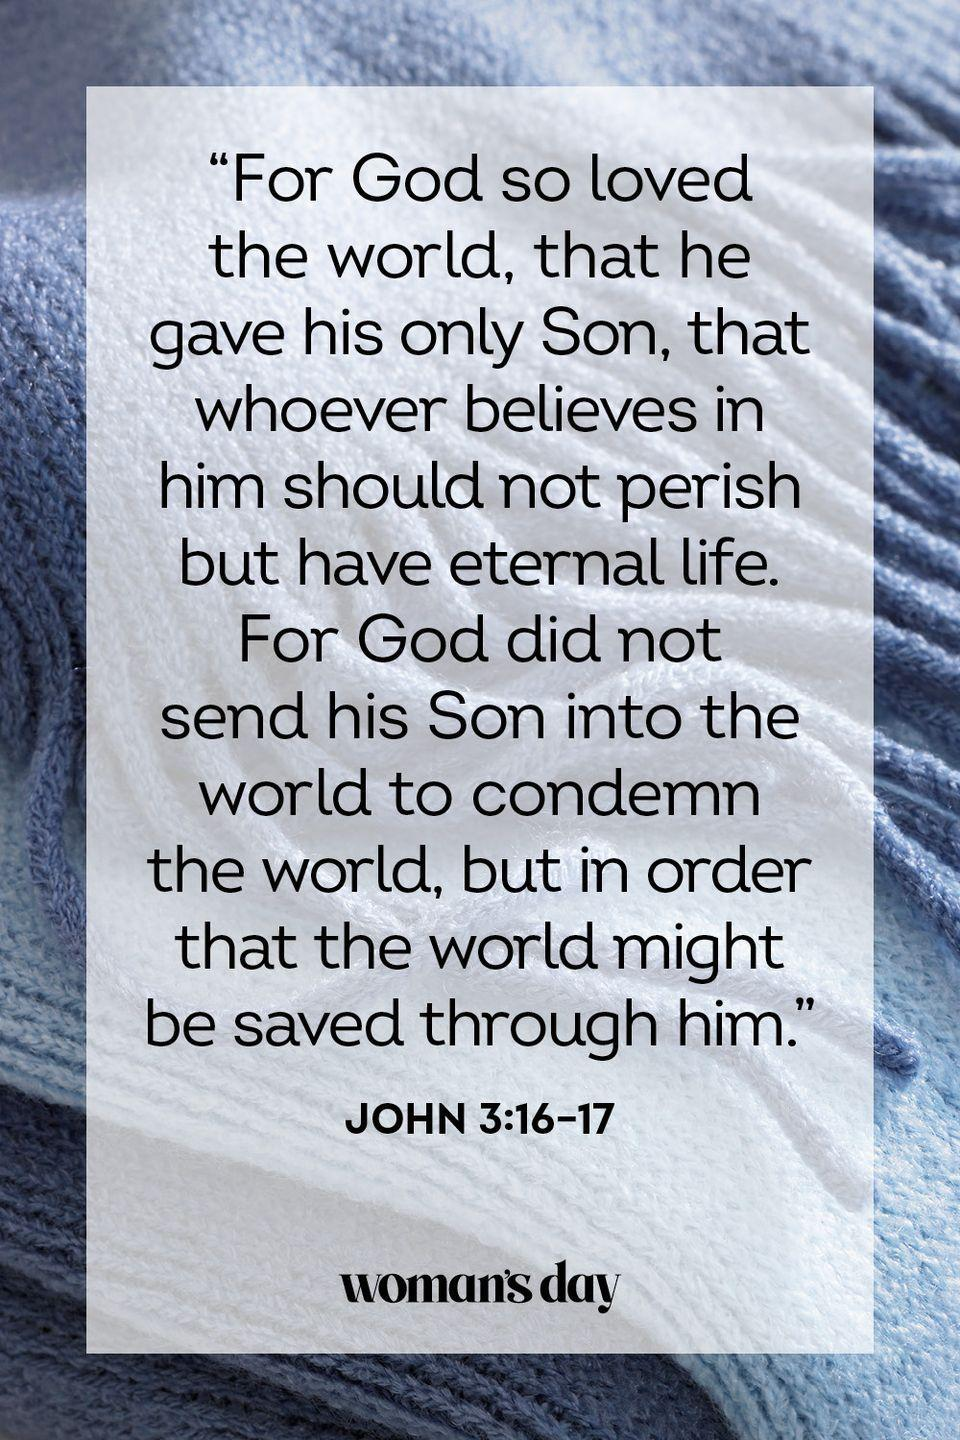 "<p>""For God so loved the world, that he gave his only Son, that whoever believes in him should not perish but have eternal life. For God did not send his Son into the world to condemn the world, but in order that the world might be saved through him.""</p><p><strong>The Good News:</strong> Salvation, and the confidence that comes with it, are always available to us through the grace of Jesus Christ.</p>"